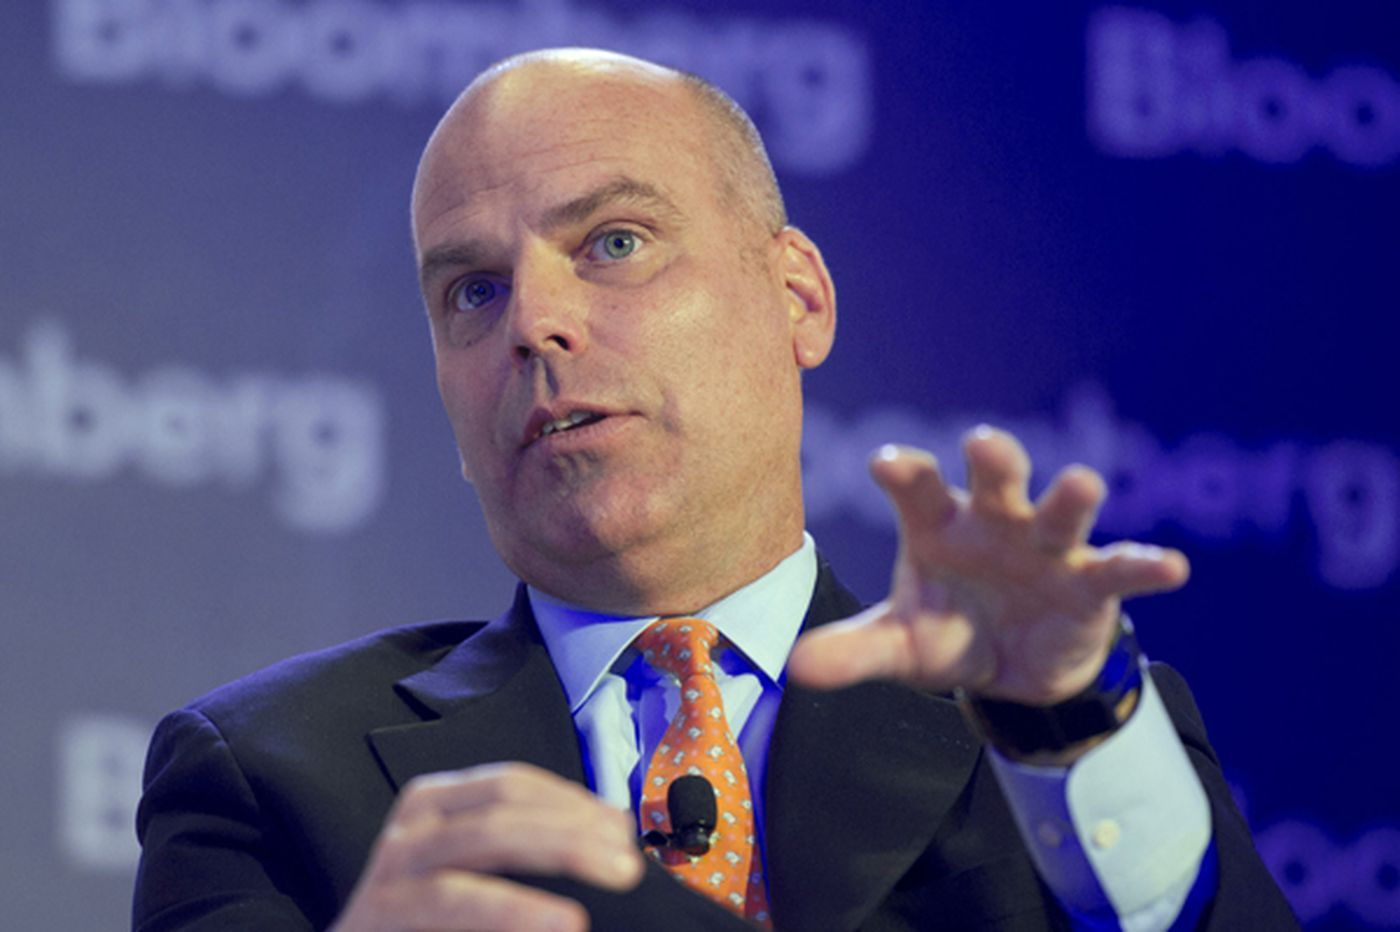 Toll Bros. CEO looks back at debacle, ahead with confidence